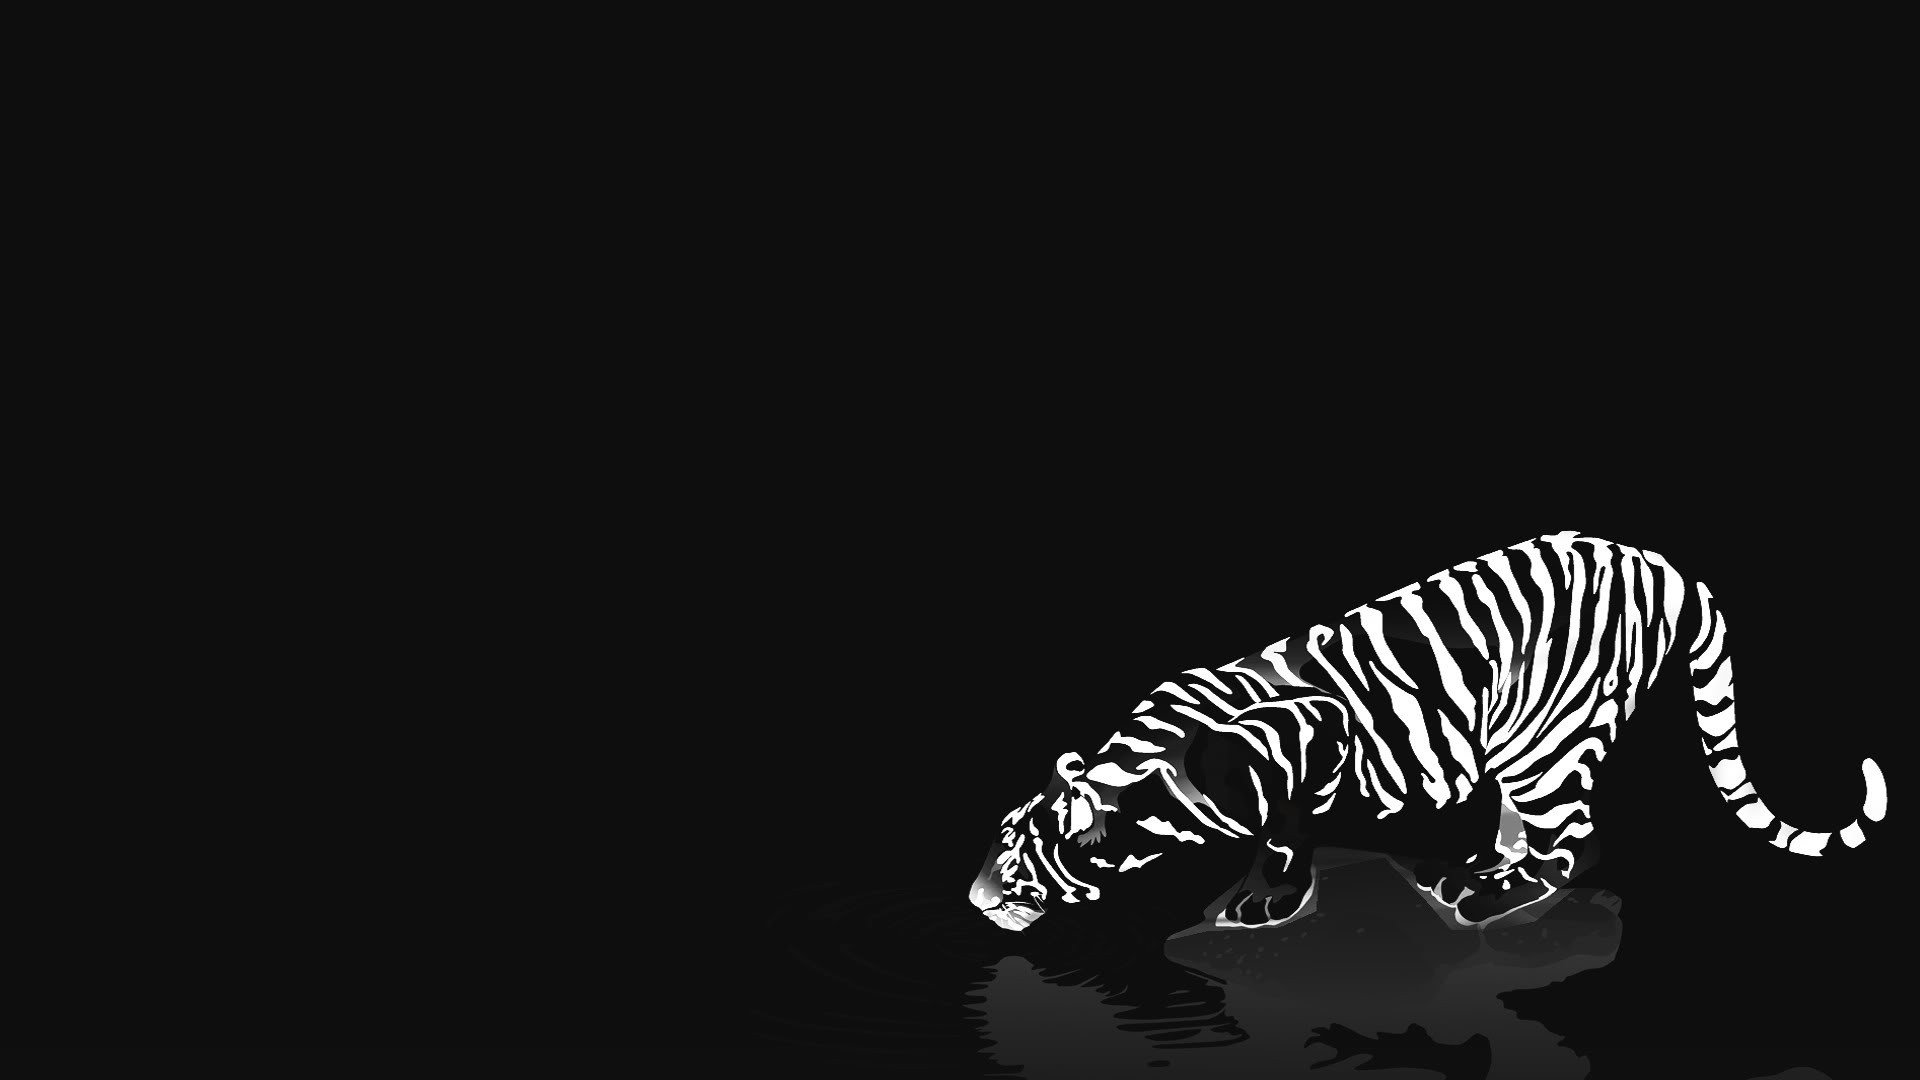 Black and White Tiger Wallpaper - WallpaperSafari